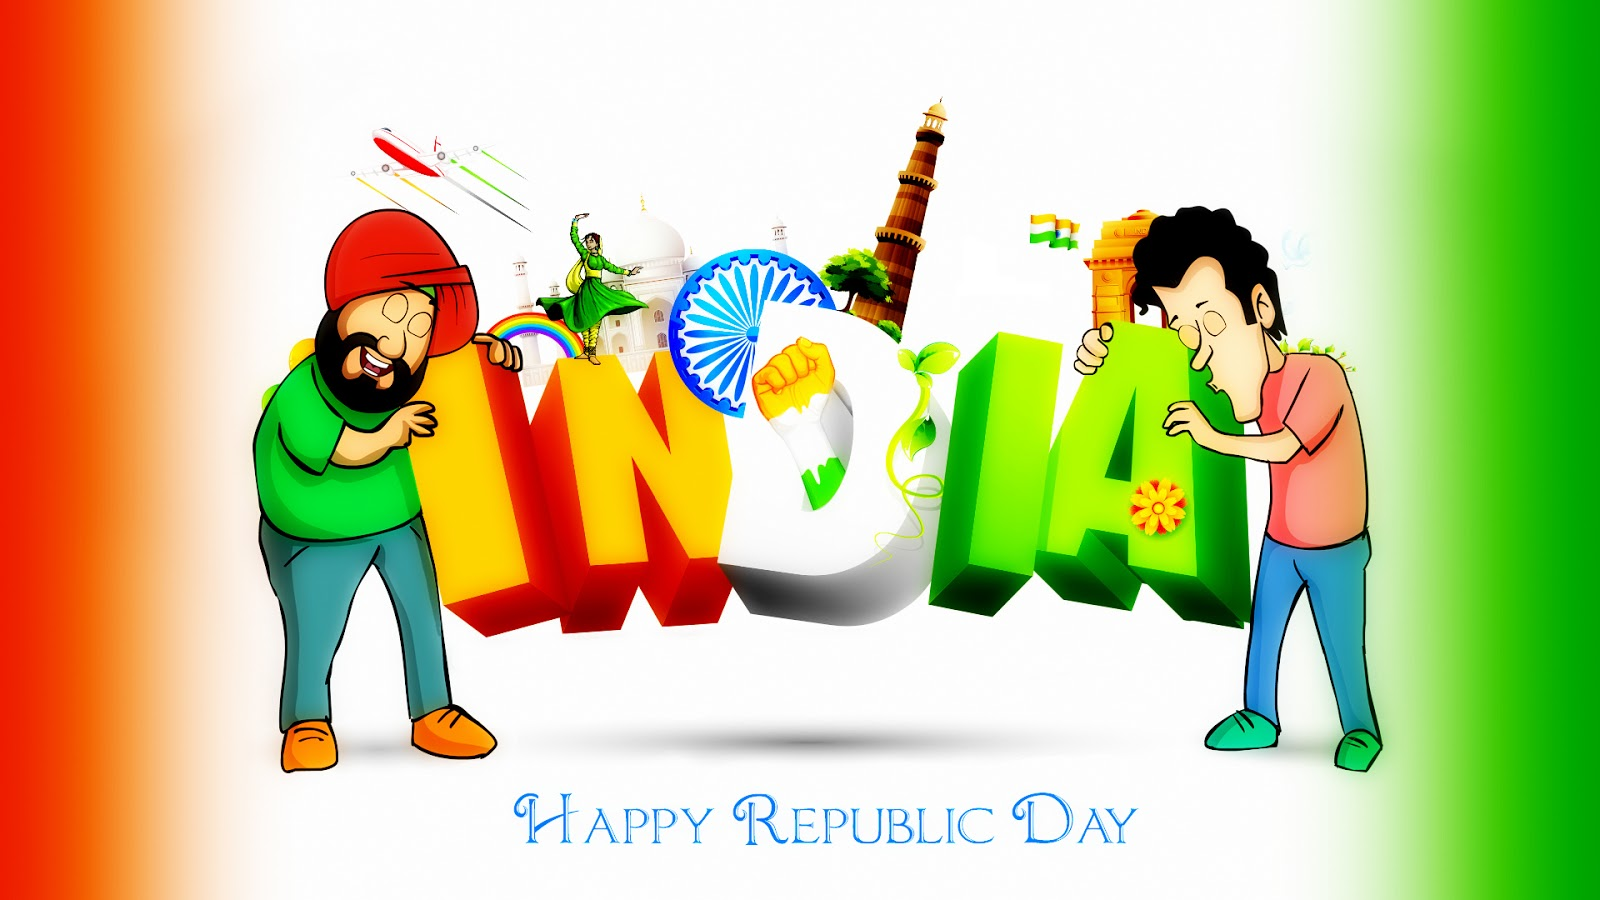 Happy Republic Day 2018 Images Hd Pics Download Photos For 26th